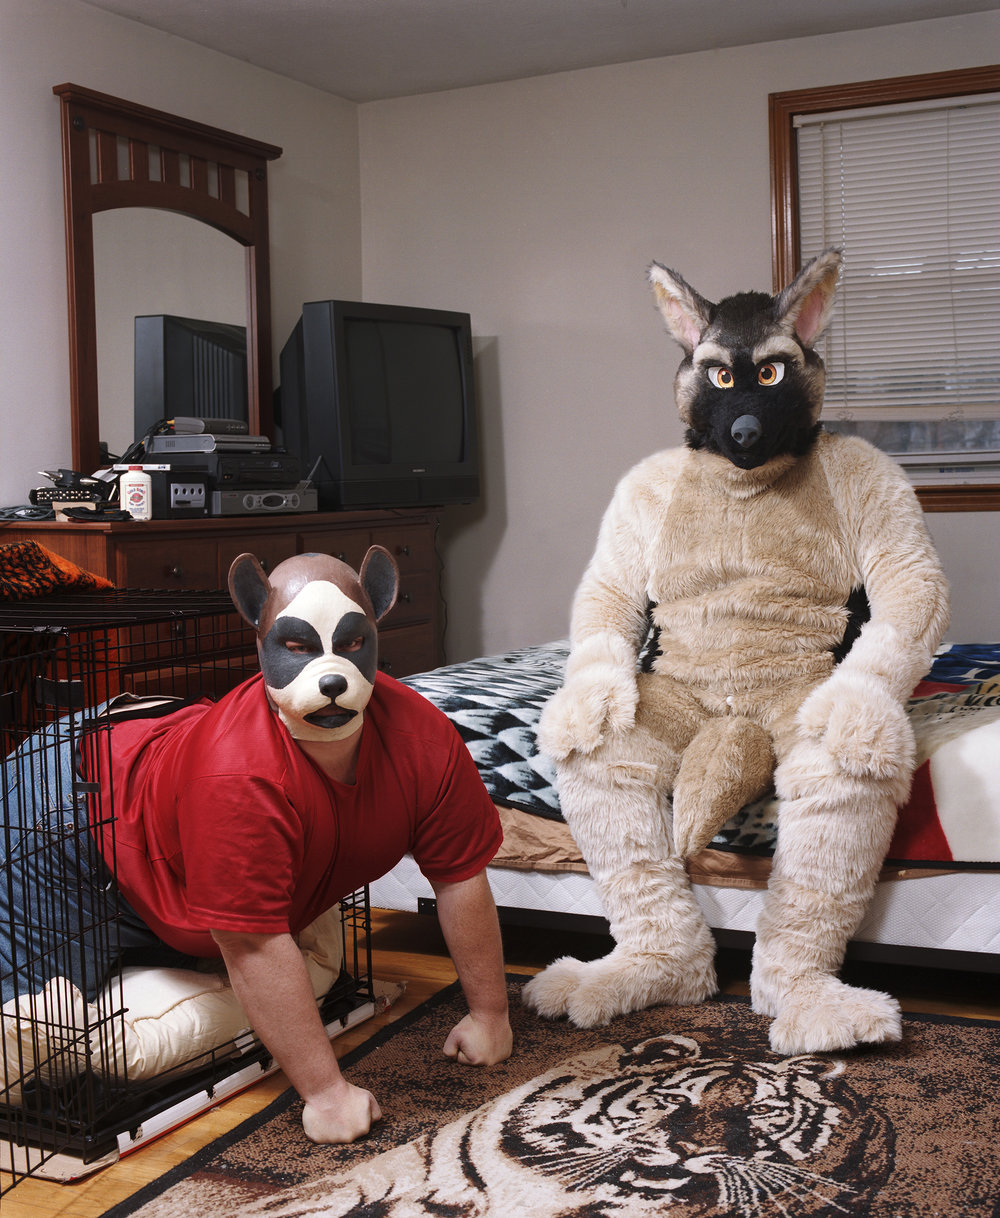 Furry/Rubber Dawg